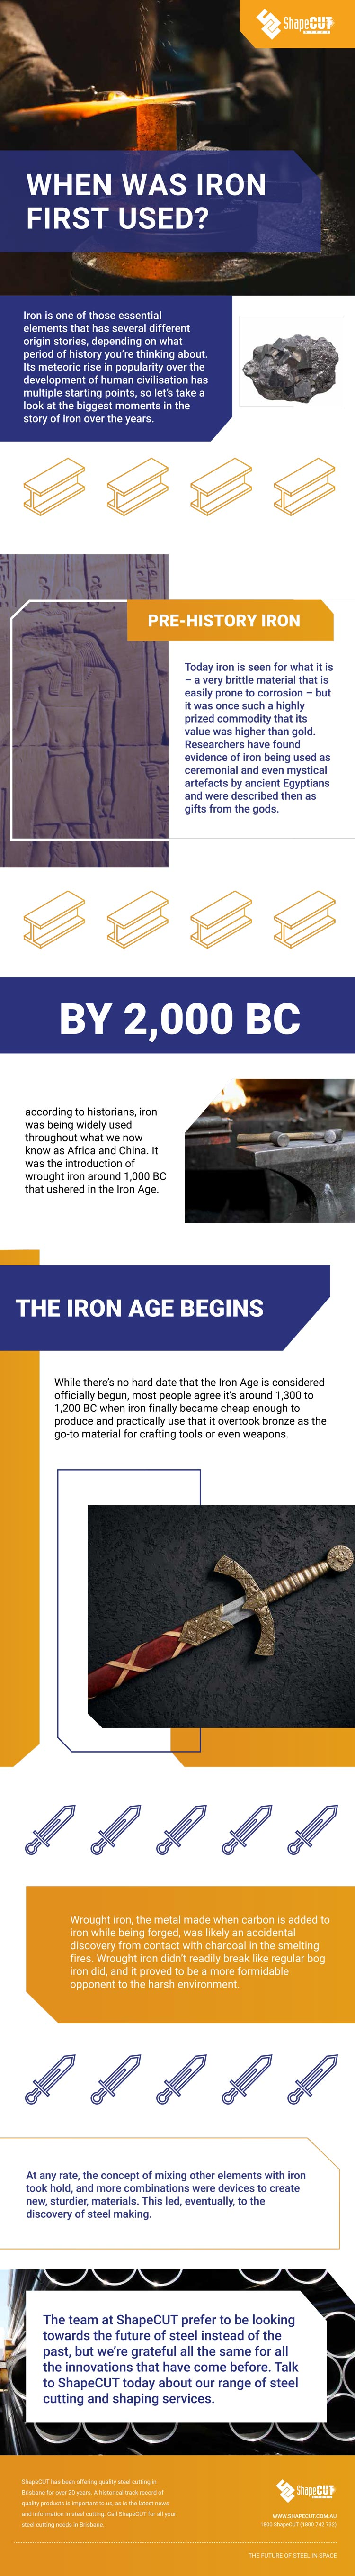 When was iron first used infographic